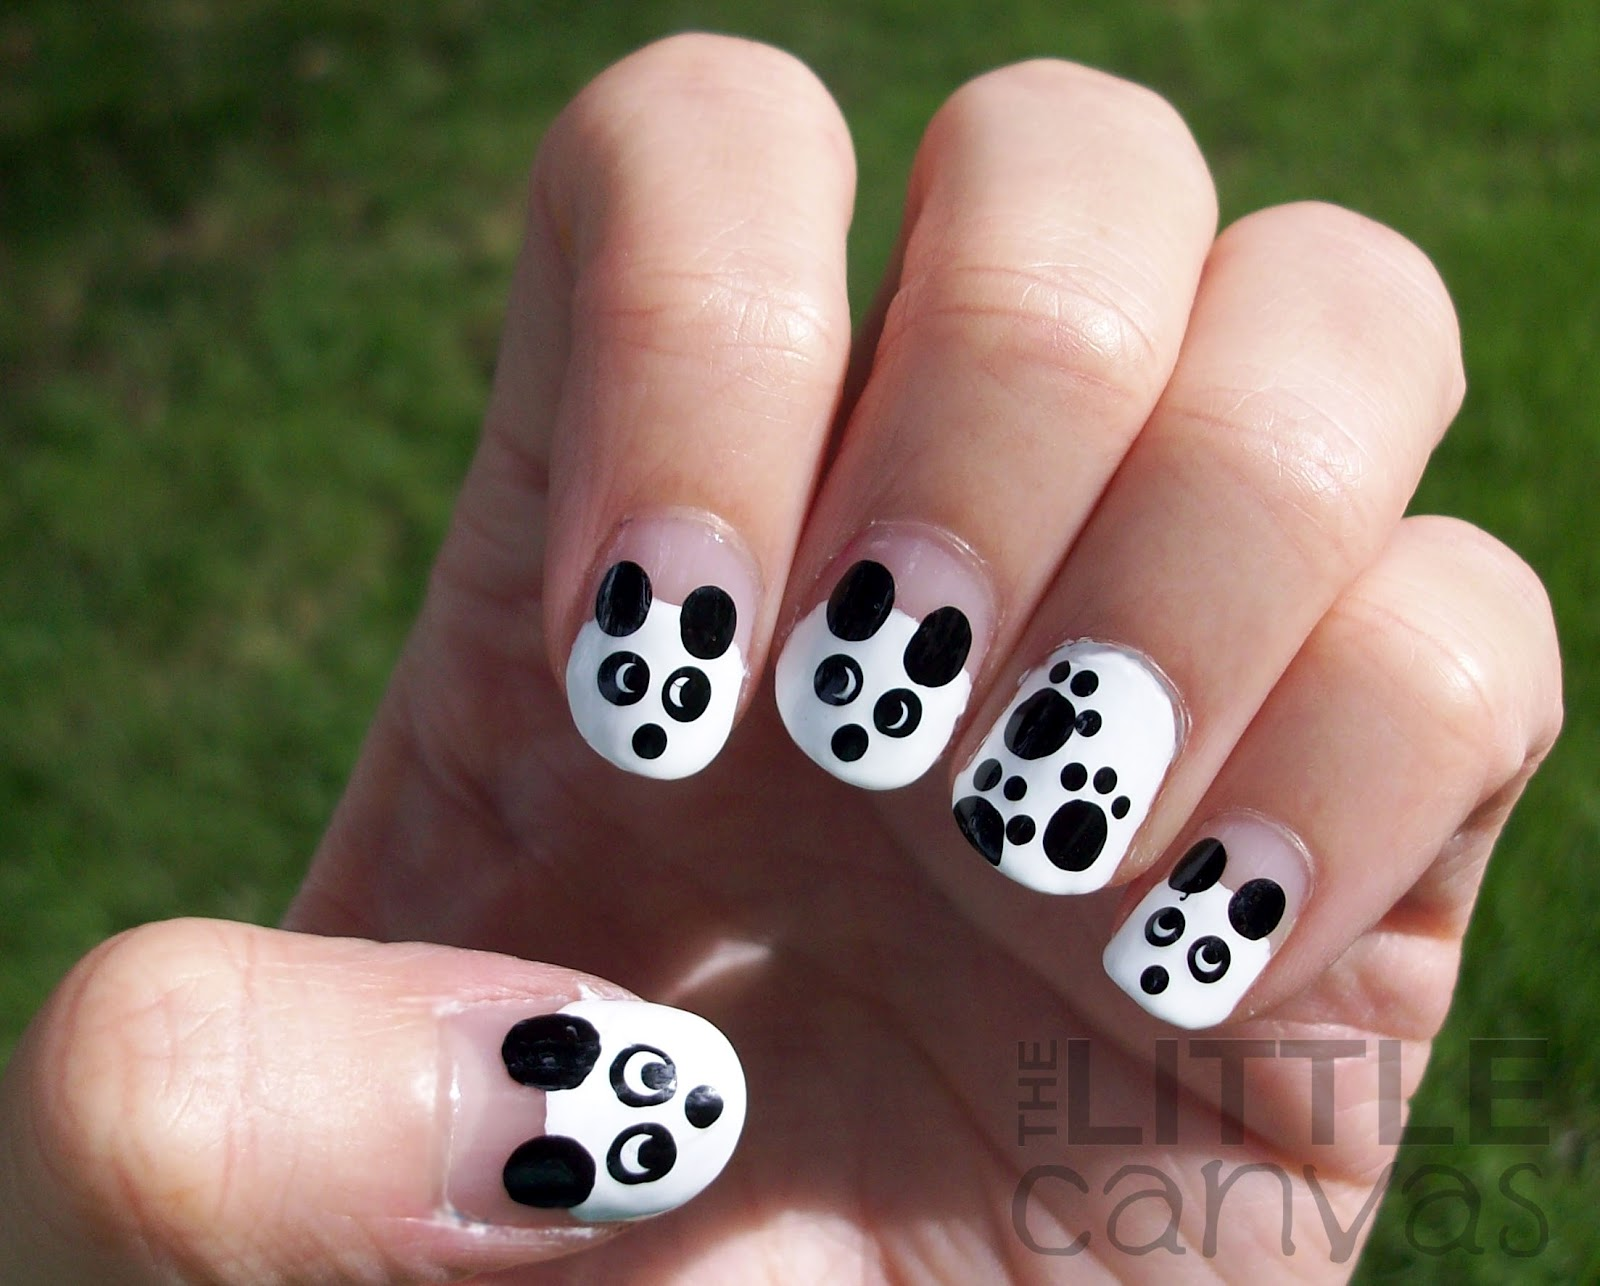 Cute panda nail art gallery nail art and nail design ideas cute panda nail art choice image nail art and nail design ideas cute panda nail art prinsesfo Images